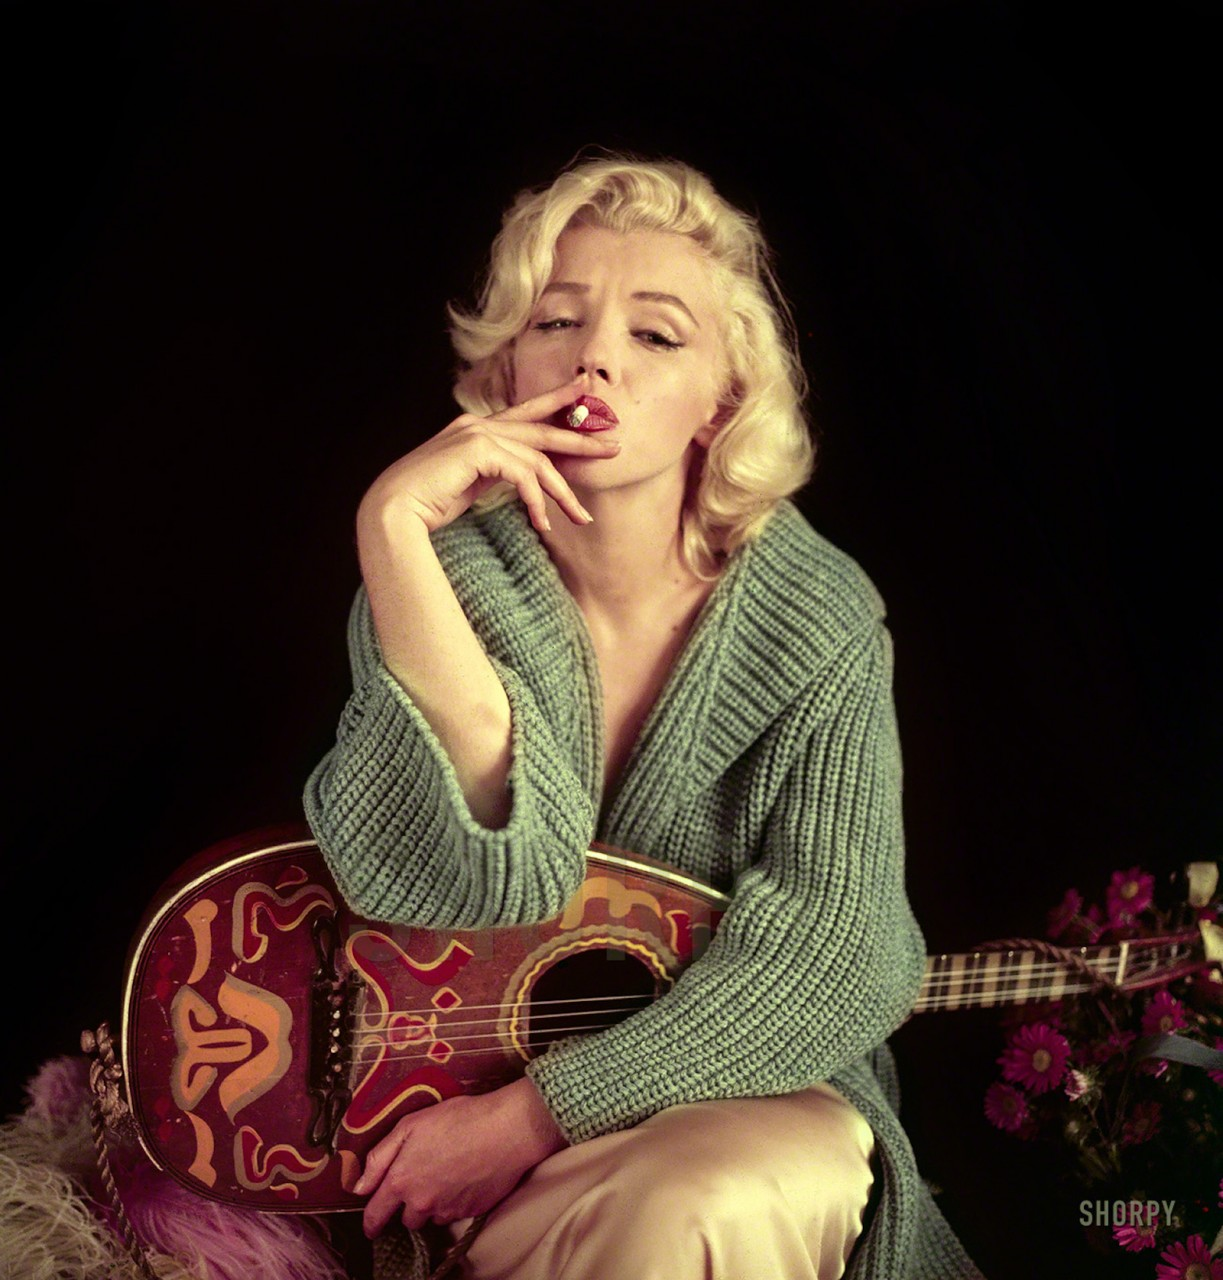 September 2, 1953. Los Angeles, California. Marilyn Monroe with mandolin.